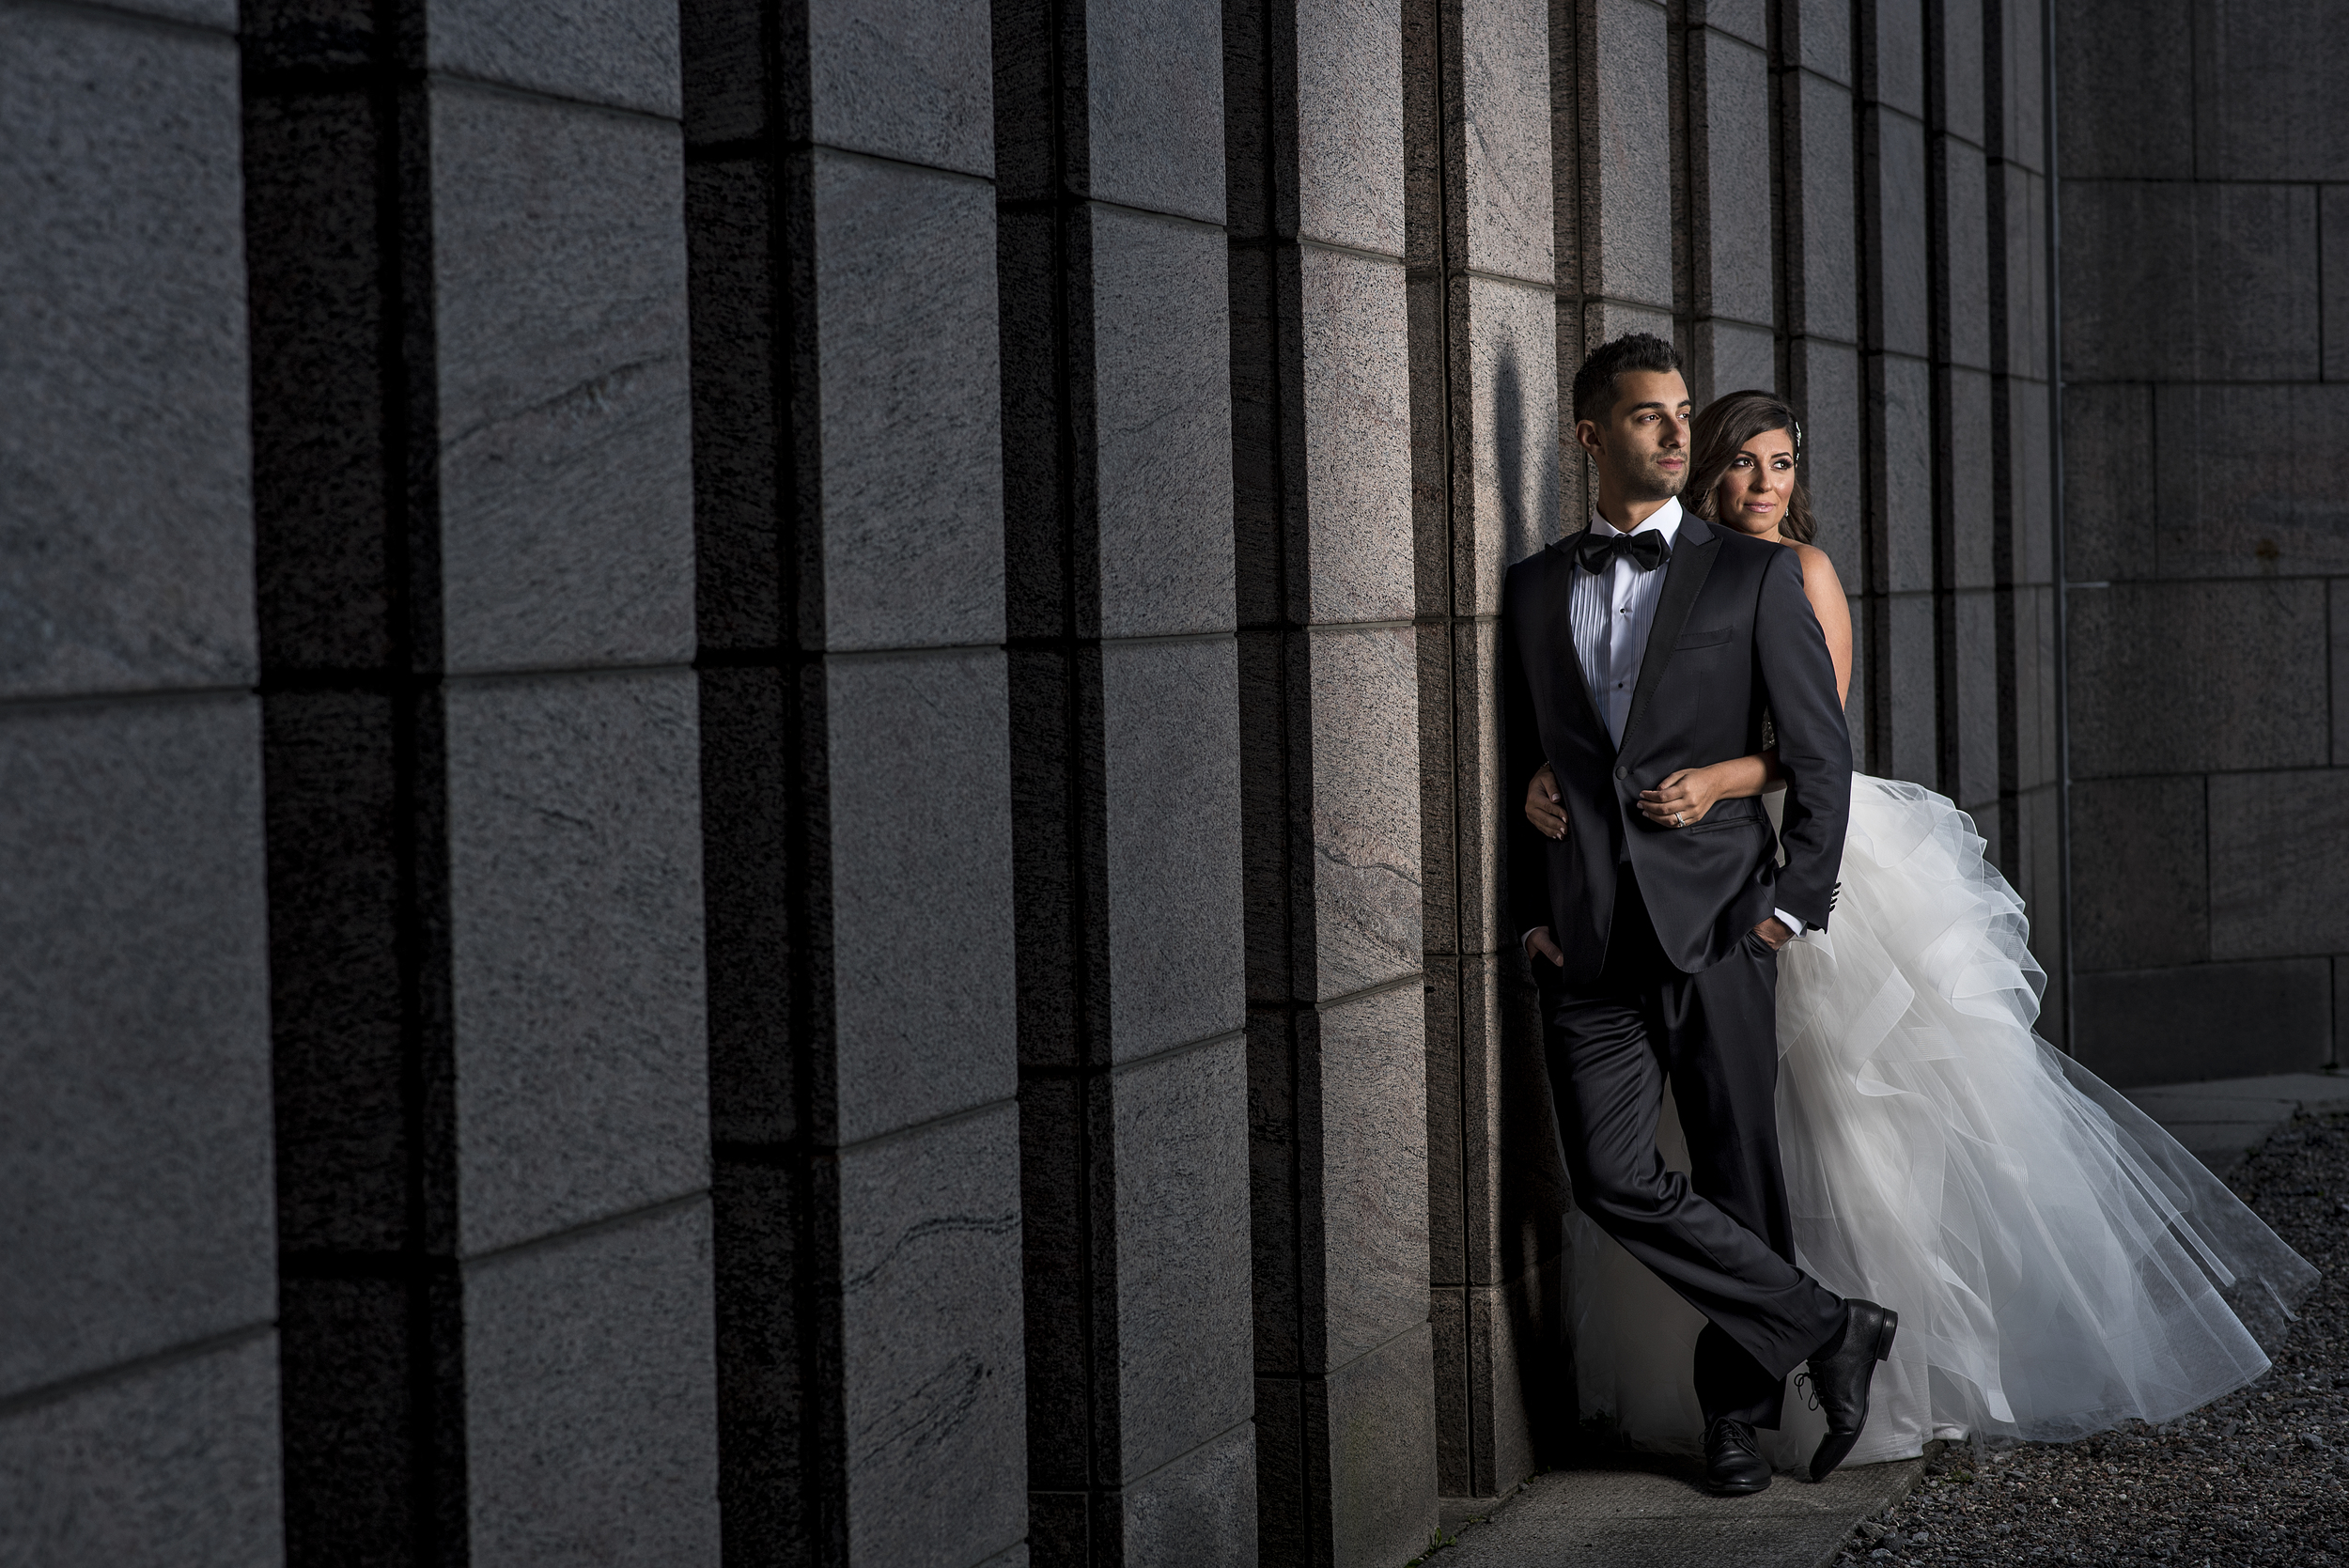 Wedding photograph at the National Art Gallery